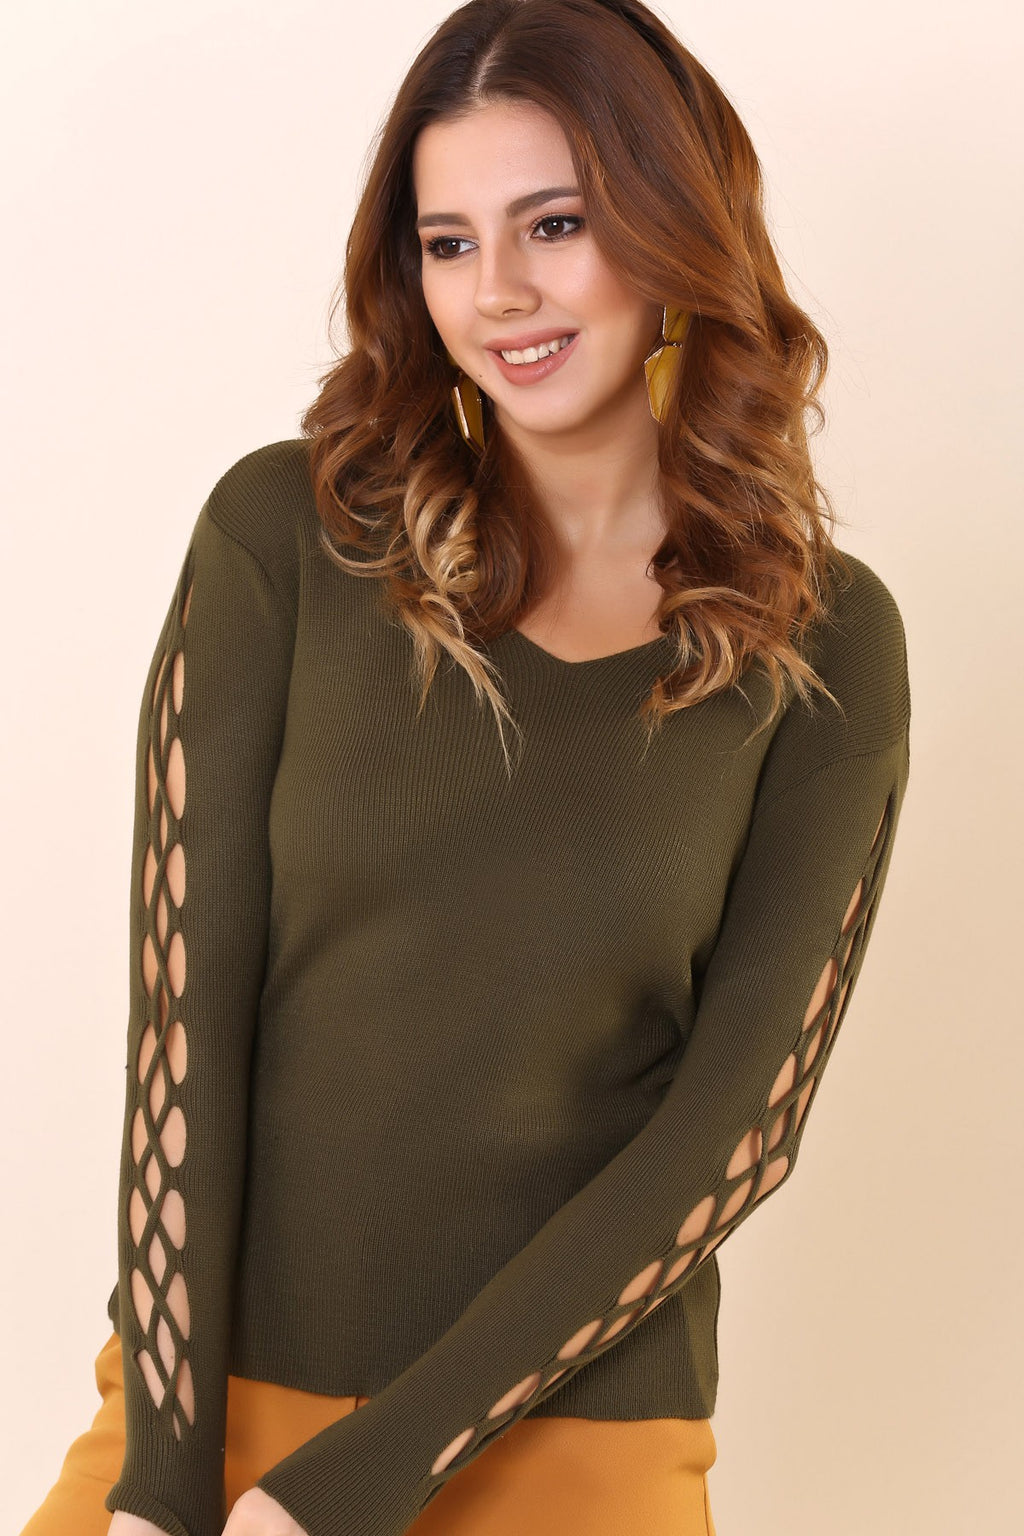 Detailed Ripped Sleeves Khaki Tricot Blouse - THE UNIQUE FIT